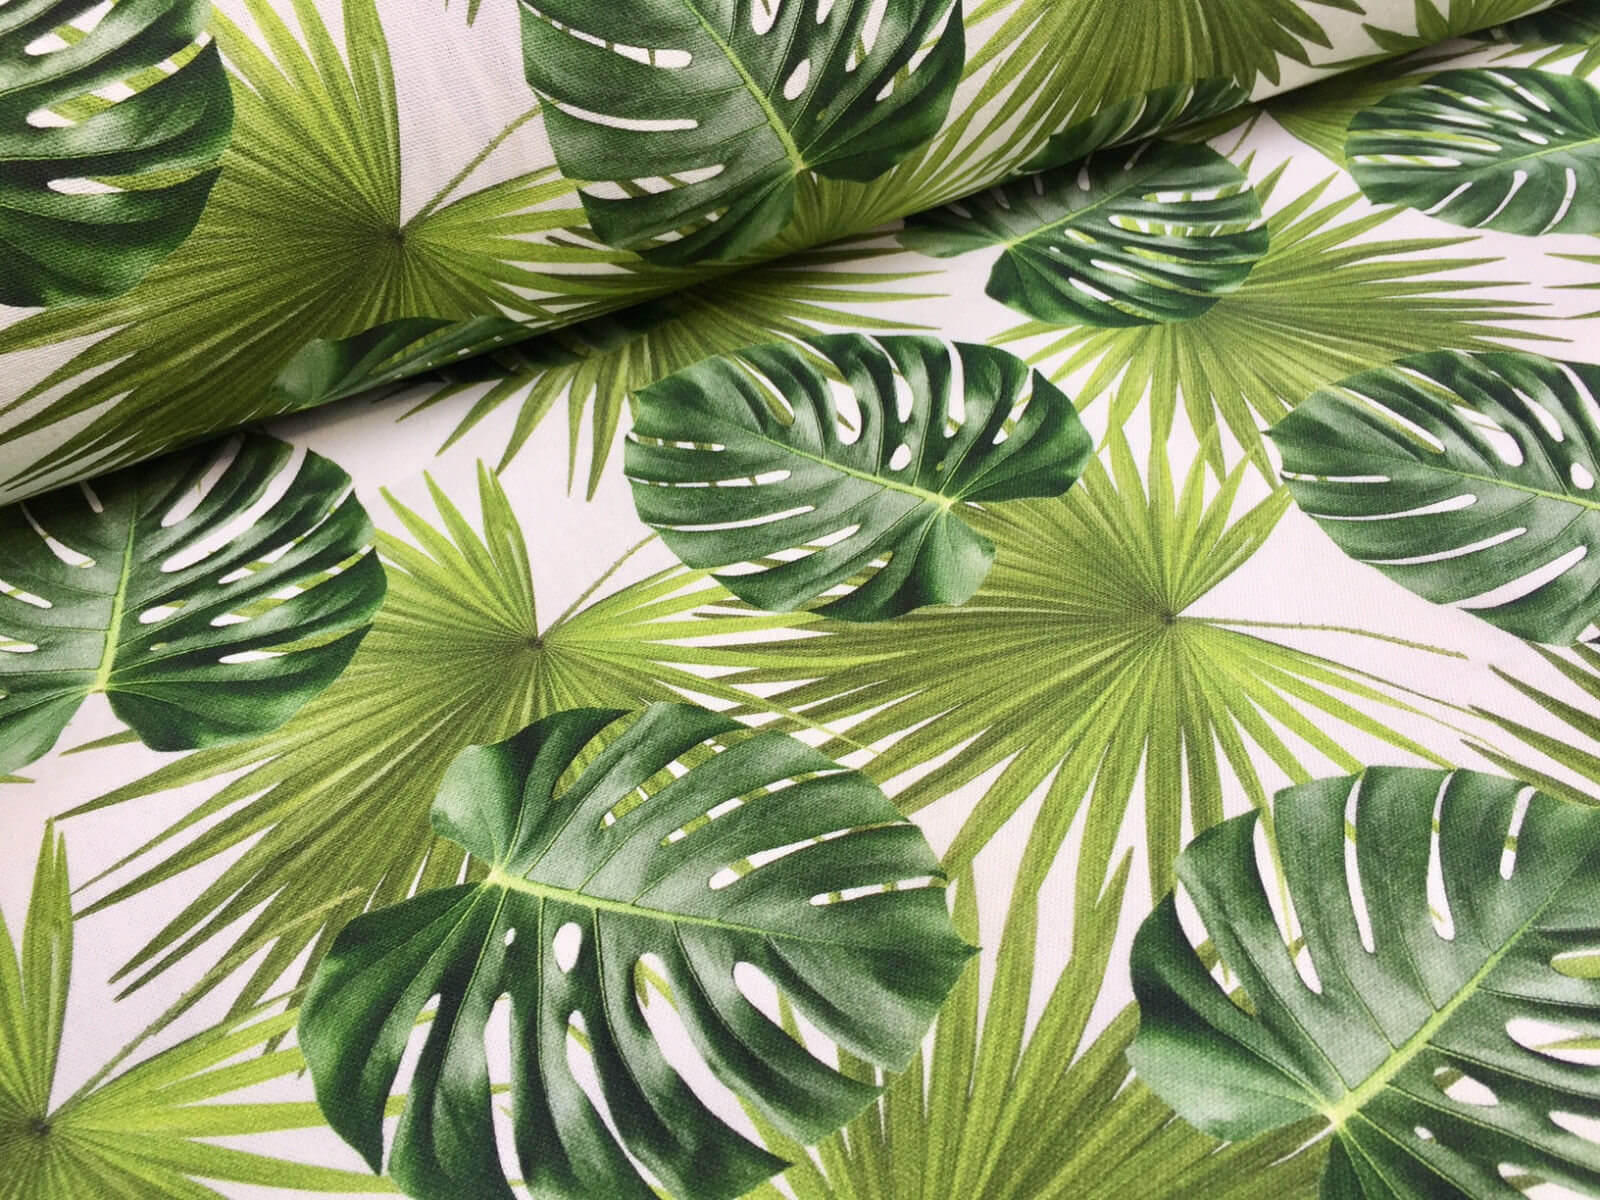 GREEN PALM LEAVES Cotton Fabric For Curtain Upholstery Digital Tropical Botanical Leaf 140cm